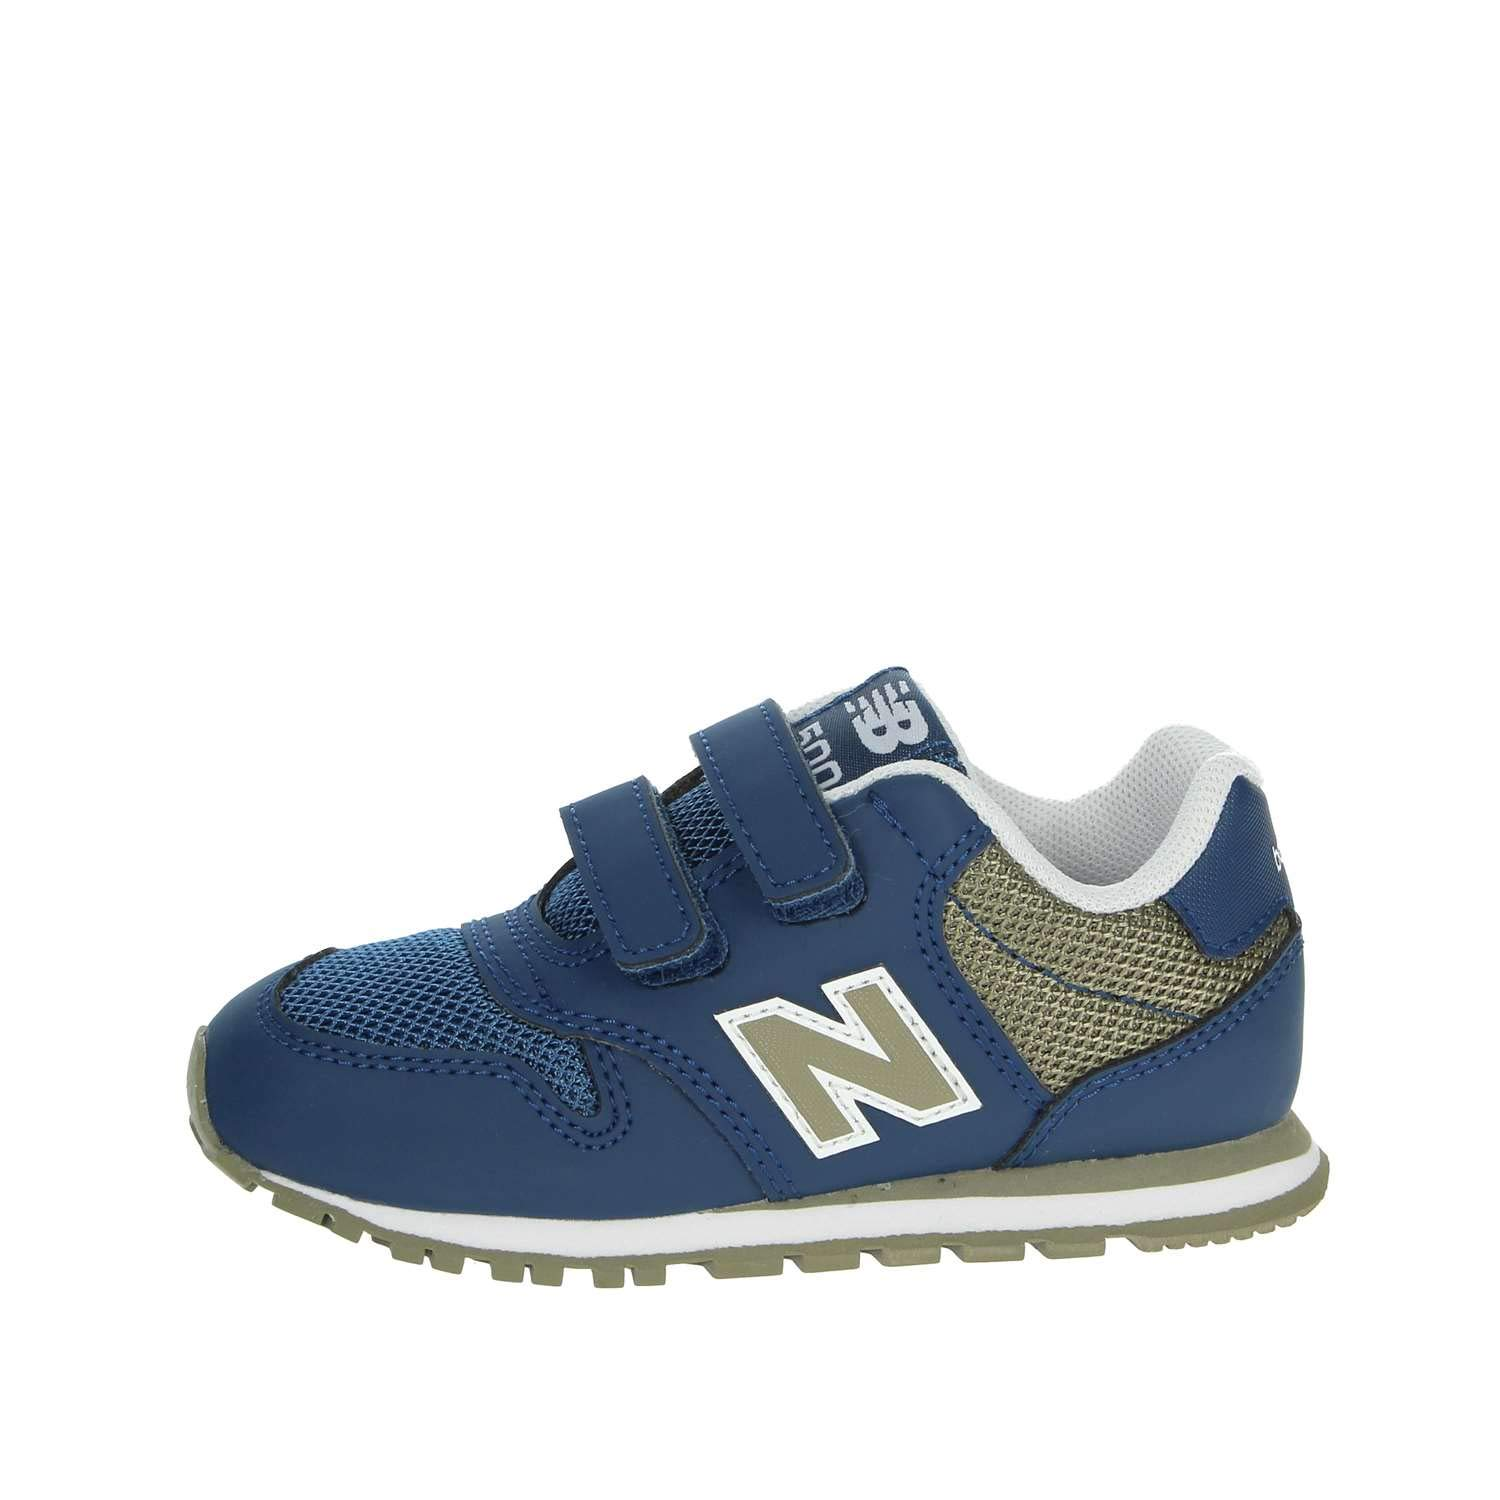 meet 693f7 46d70 New Balance IV500 NV Navy Blue Shoes Baby Snatch Sneakers ...